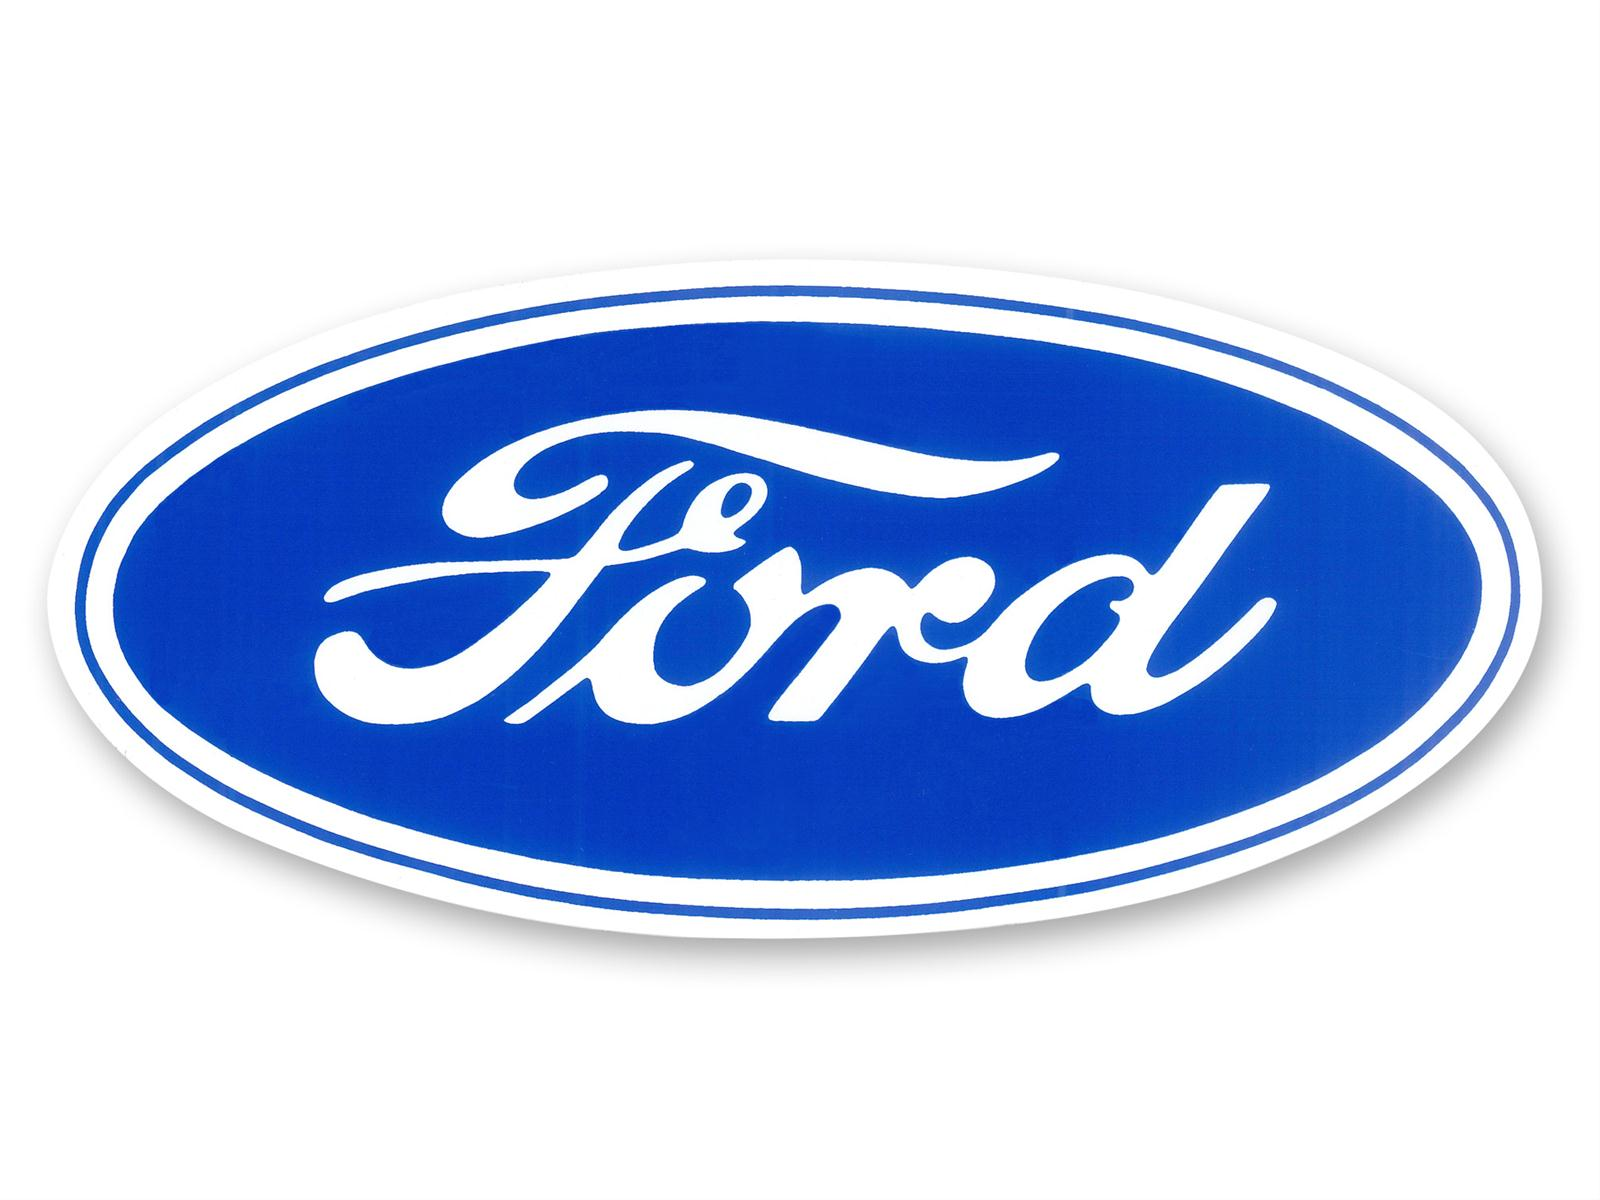 free ford logo six sigma tree diagram scott drake decals df 361 shipping on orders over